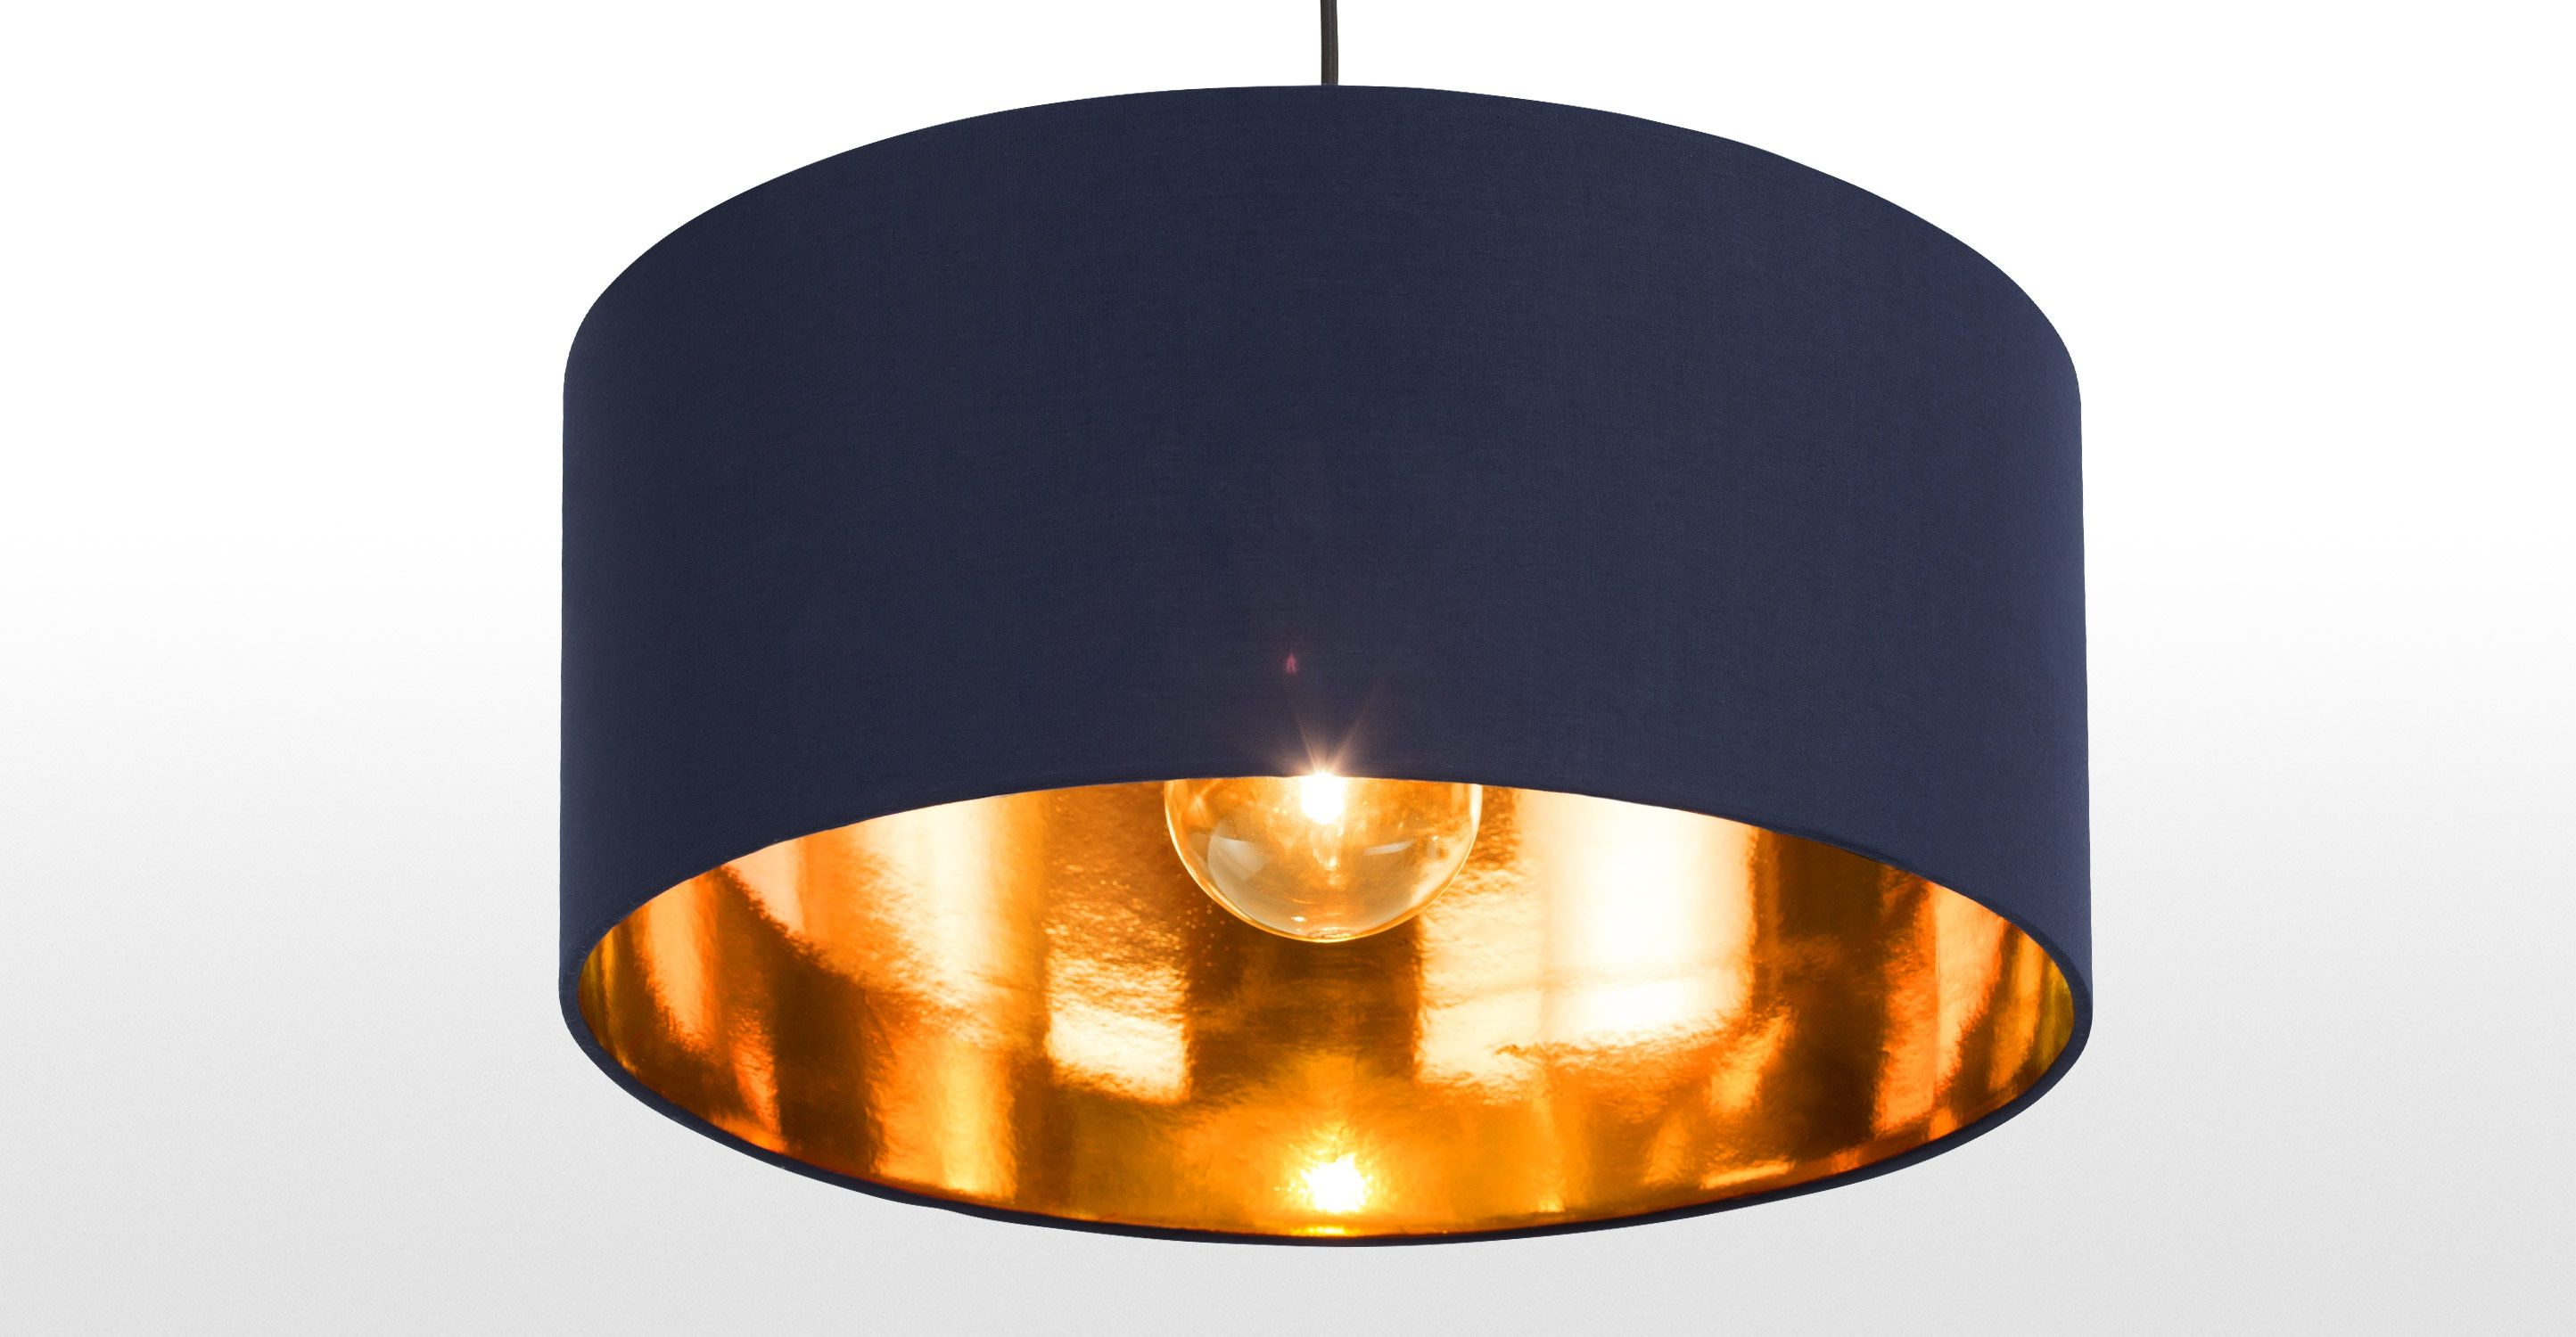 Navy copper copper ceiling pendant lamp shade hue living rooms navy copper copper ceiling pendant lamp shade hue mozeypictures Images